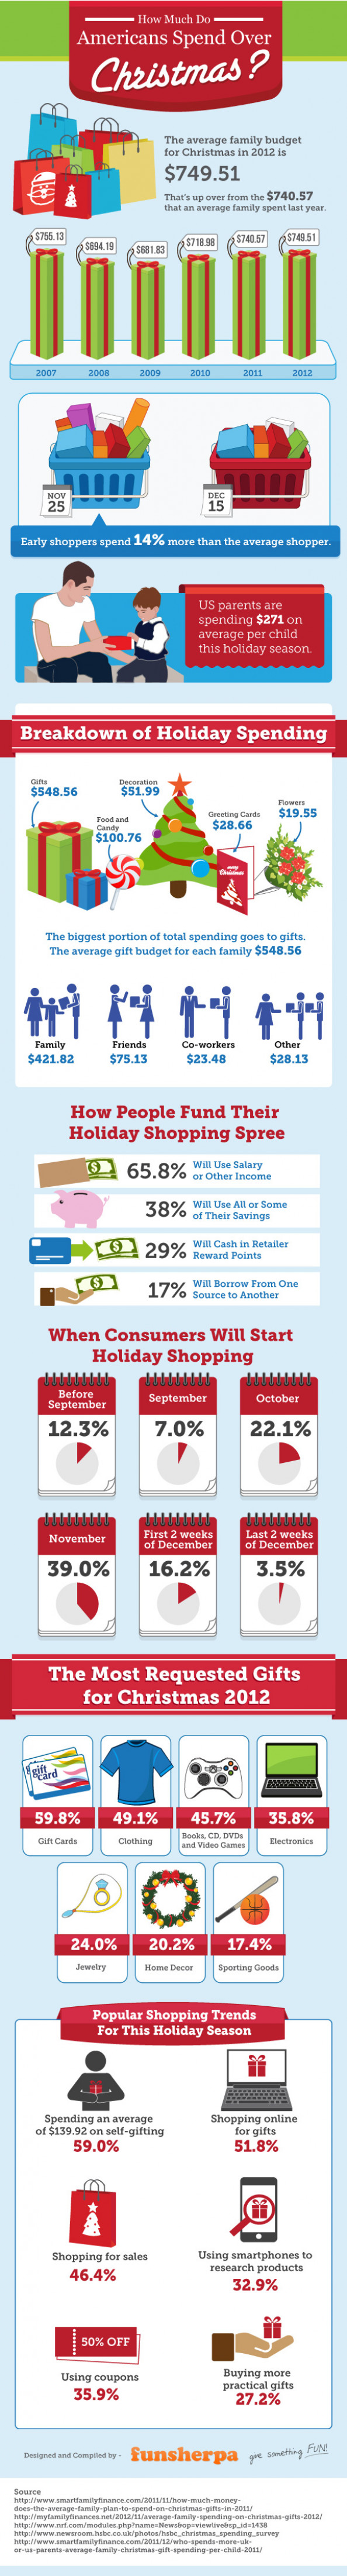 How Much Do Americans Spend Over Christmas? Infographic